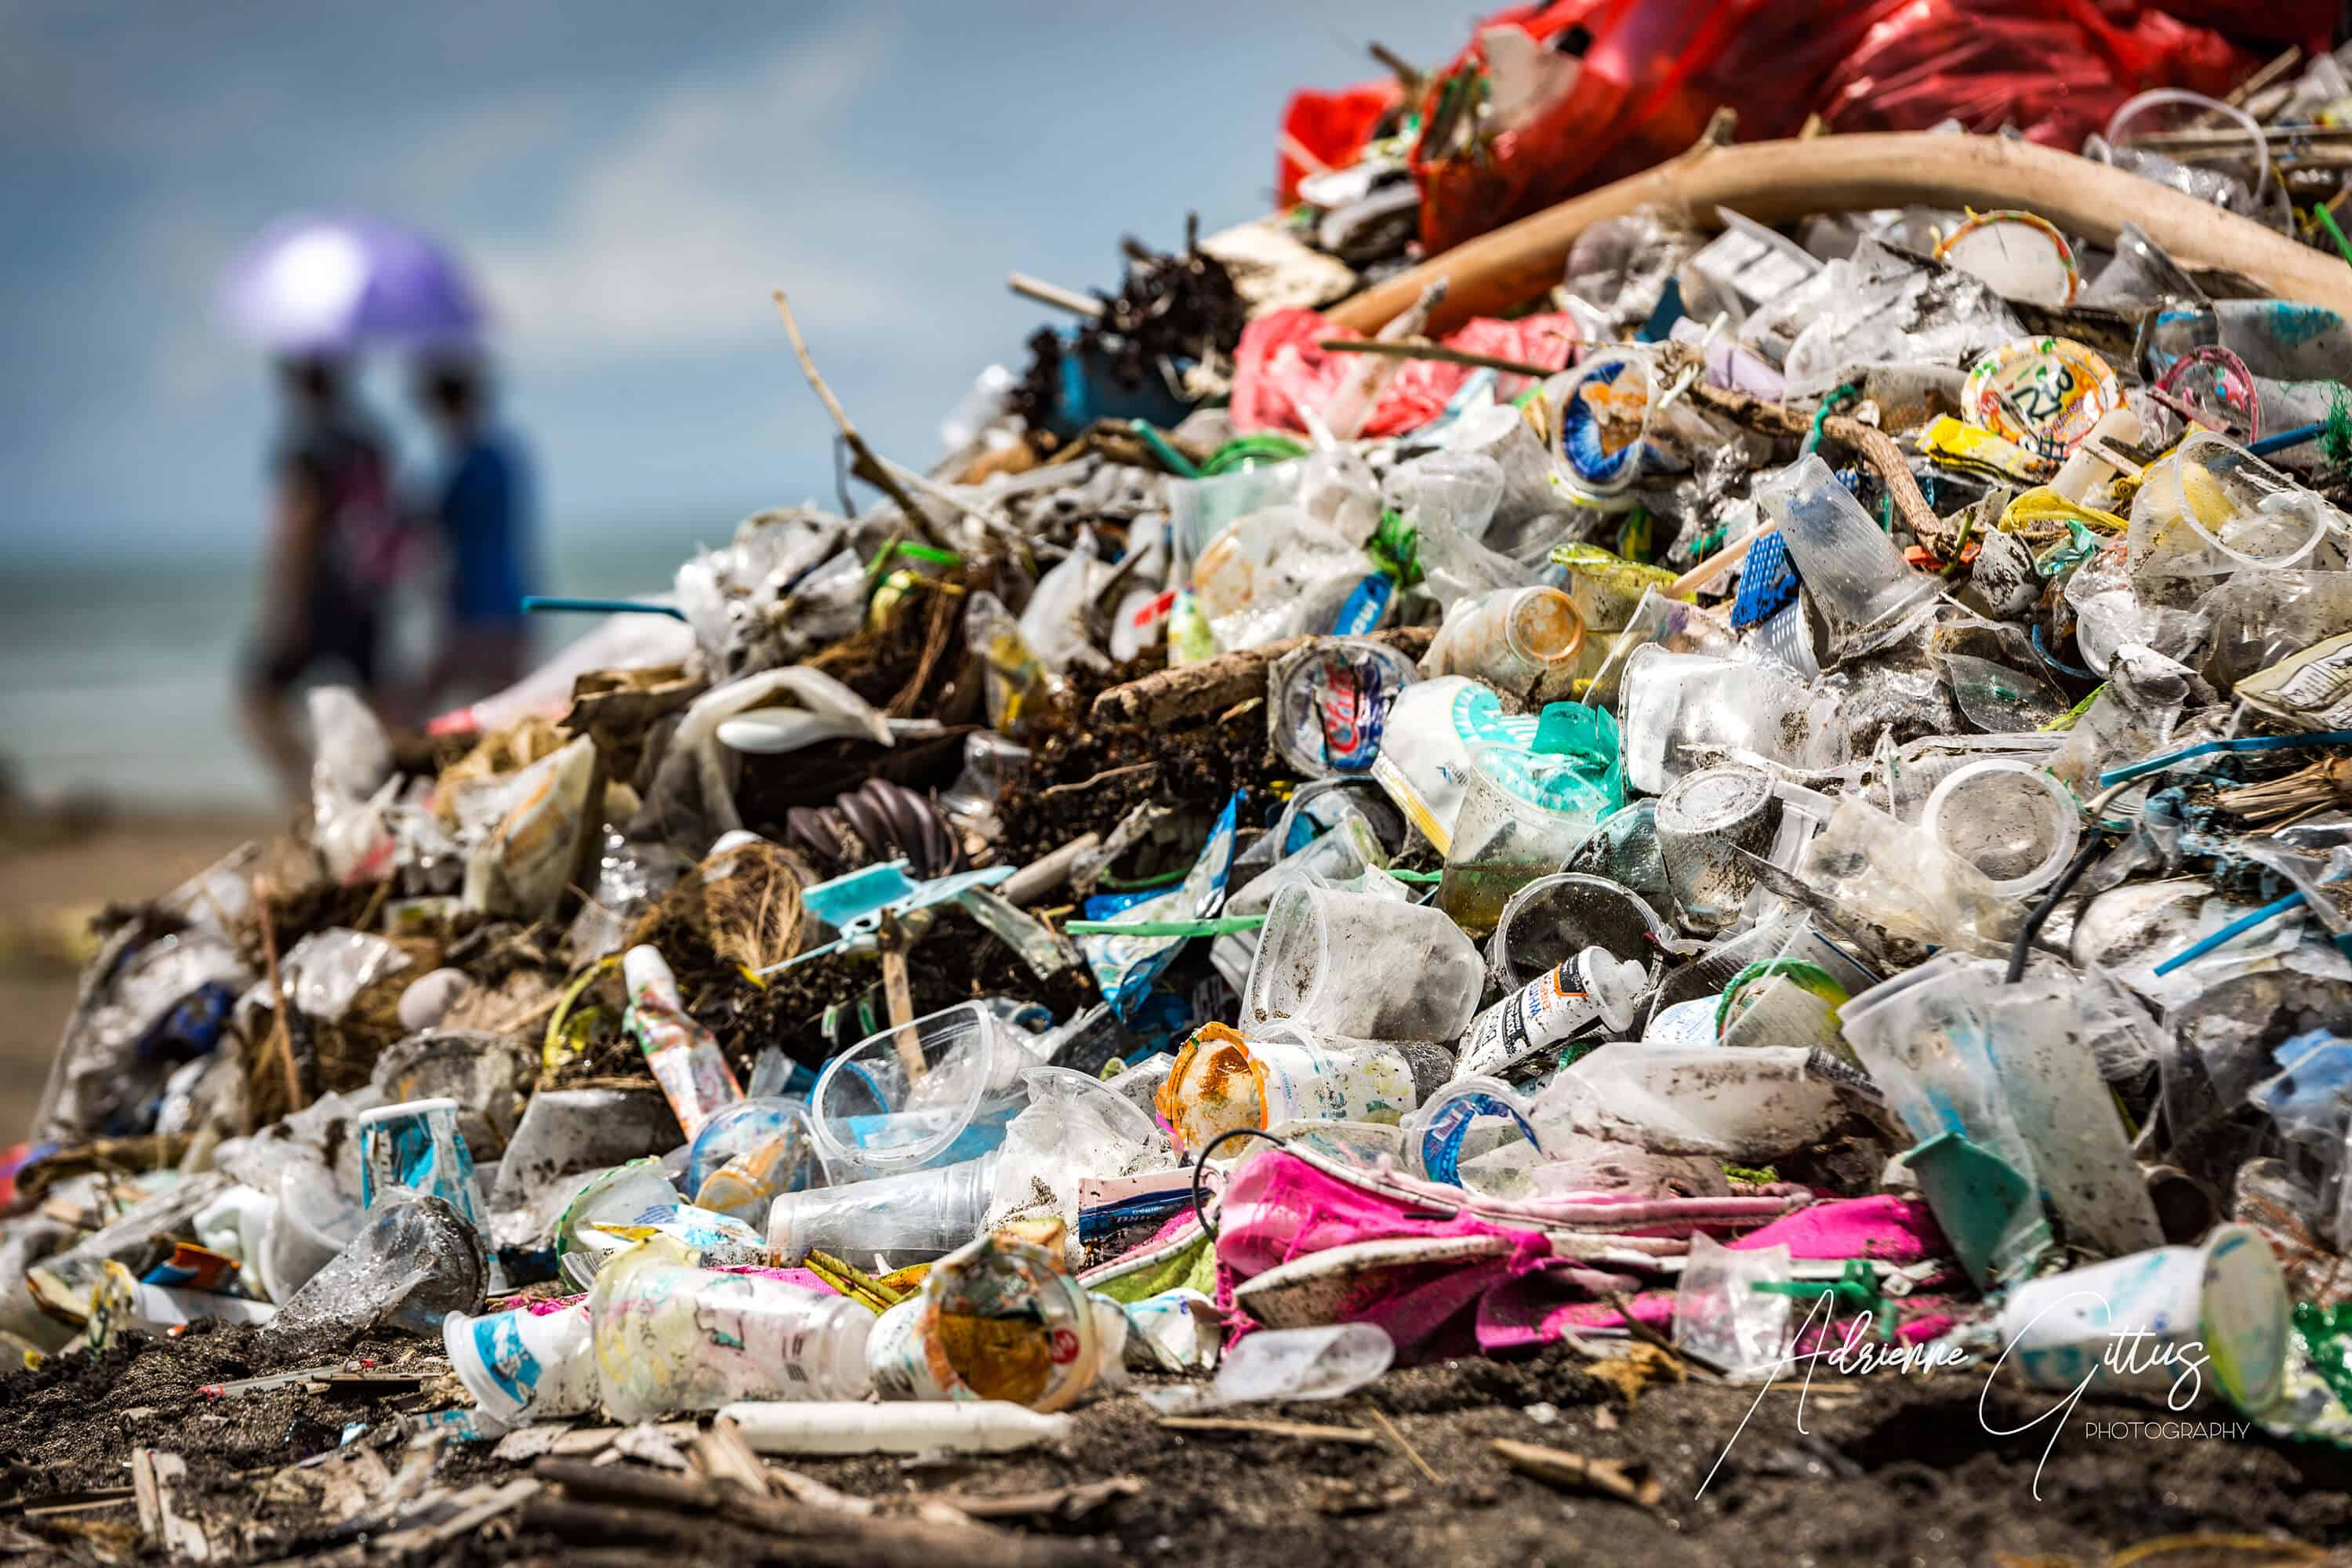 Plastic rubbish piled on the beaches of Bali, paradise lost